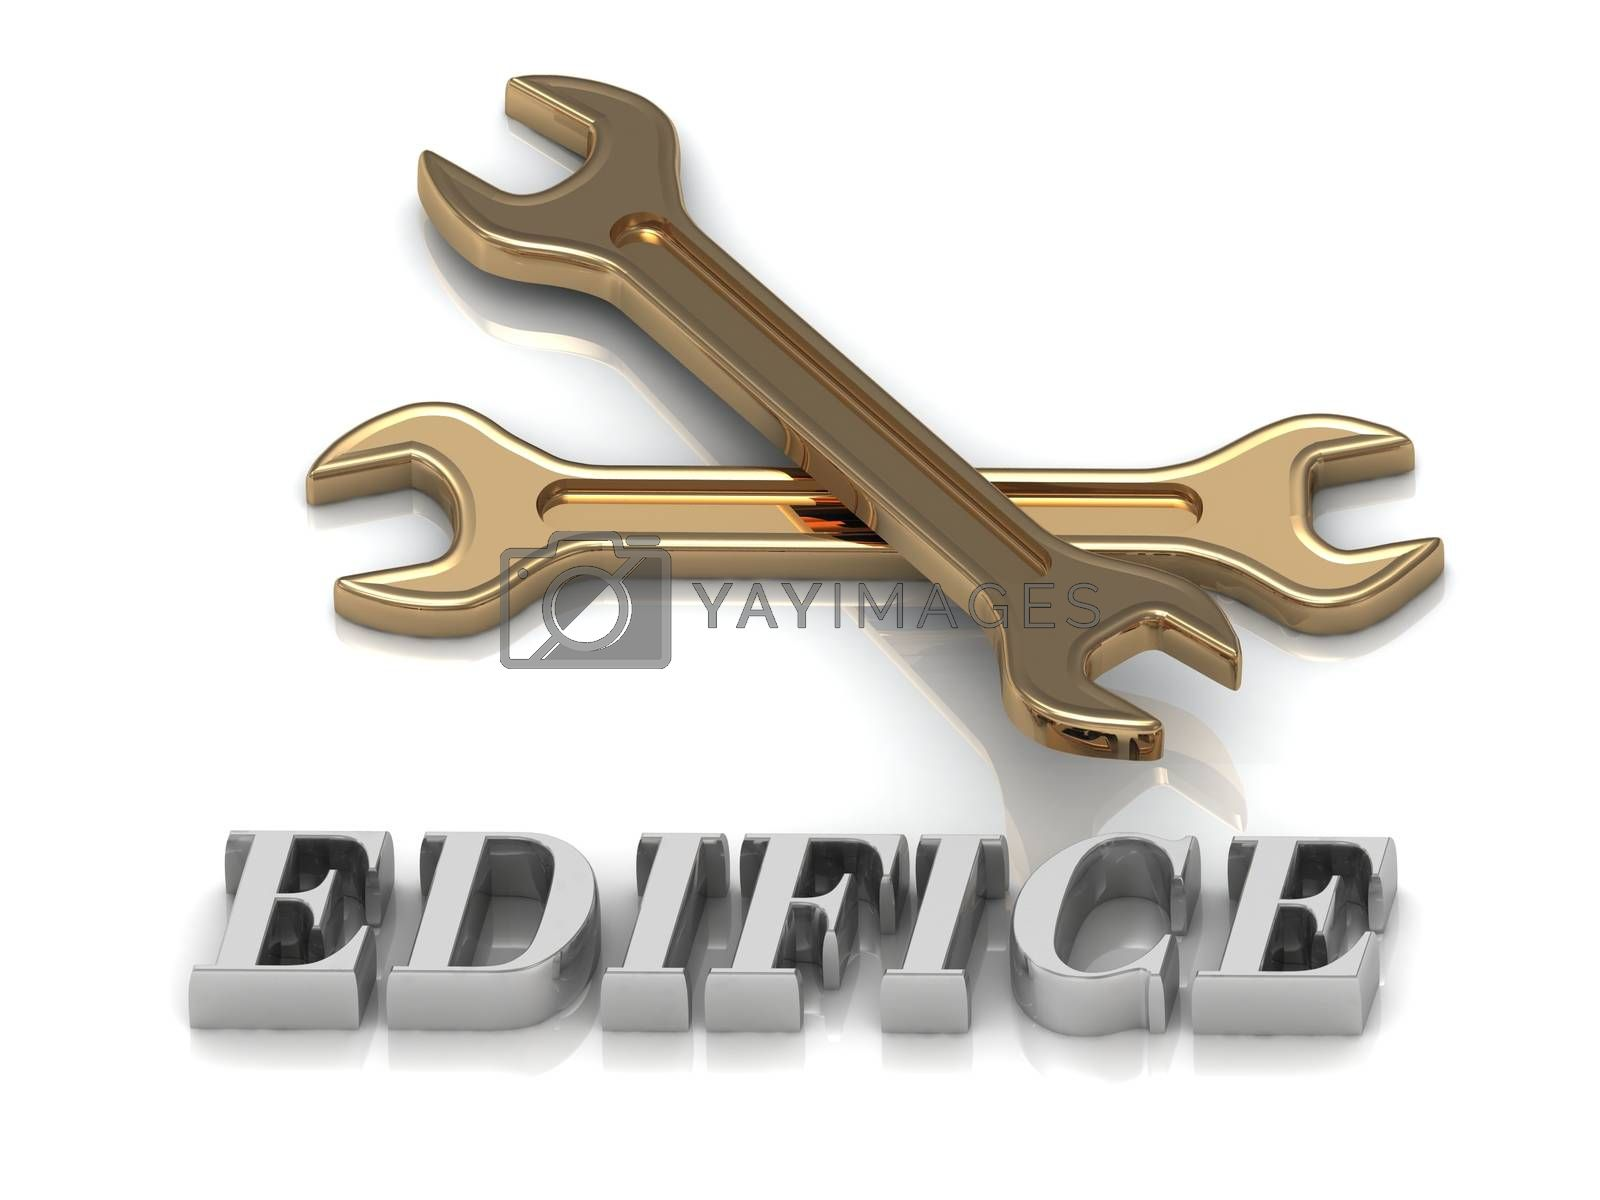 EDIFICE- inscription of metal letters and 2 keys on white background